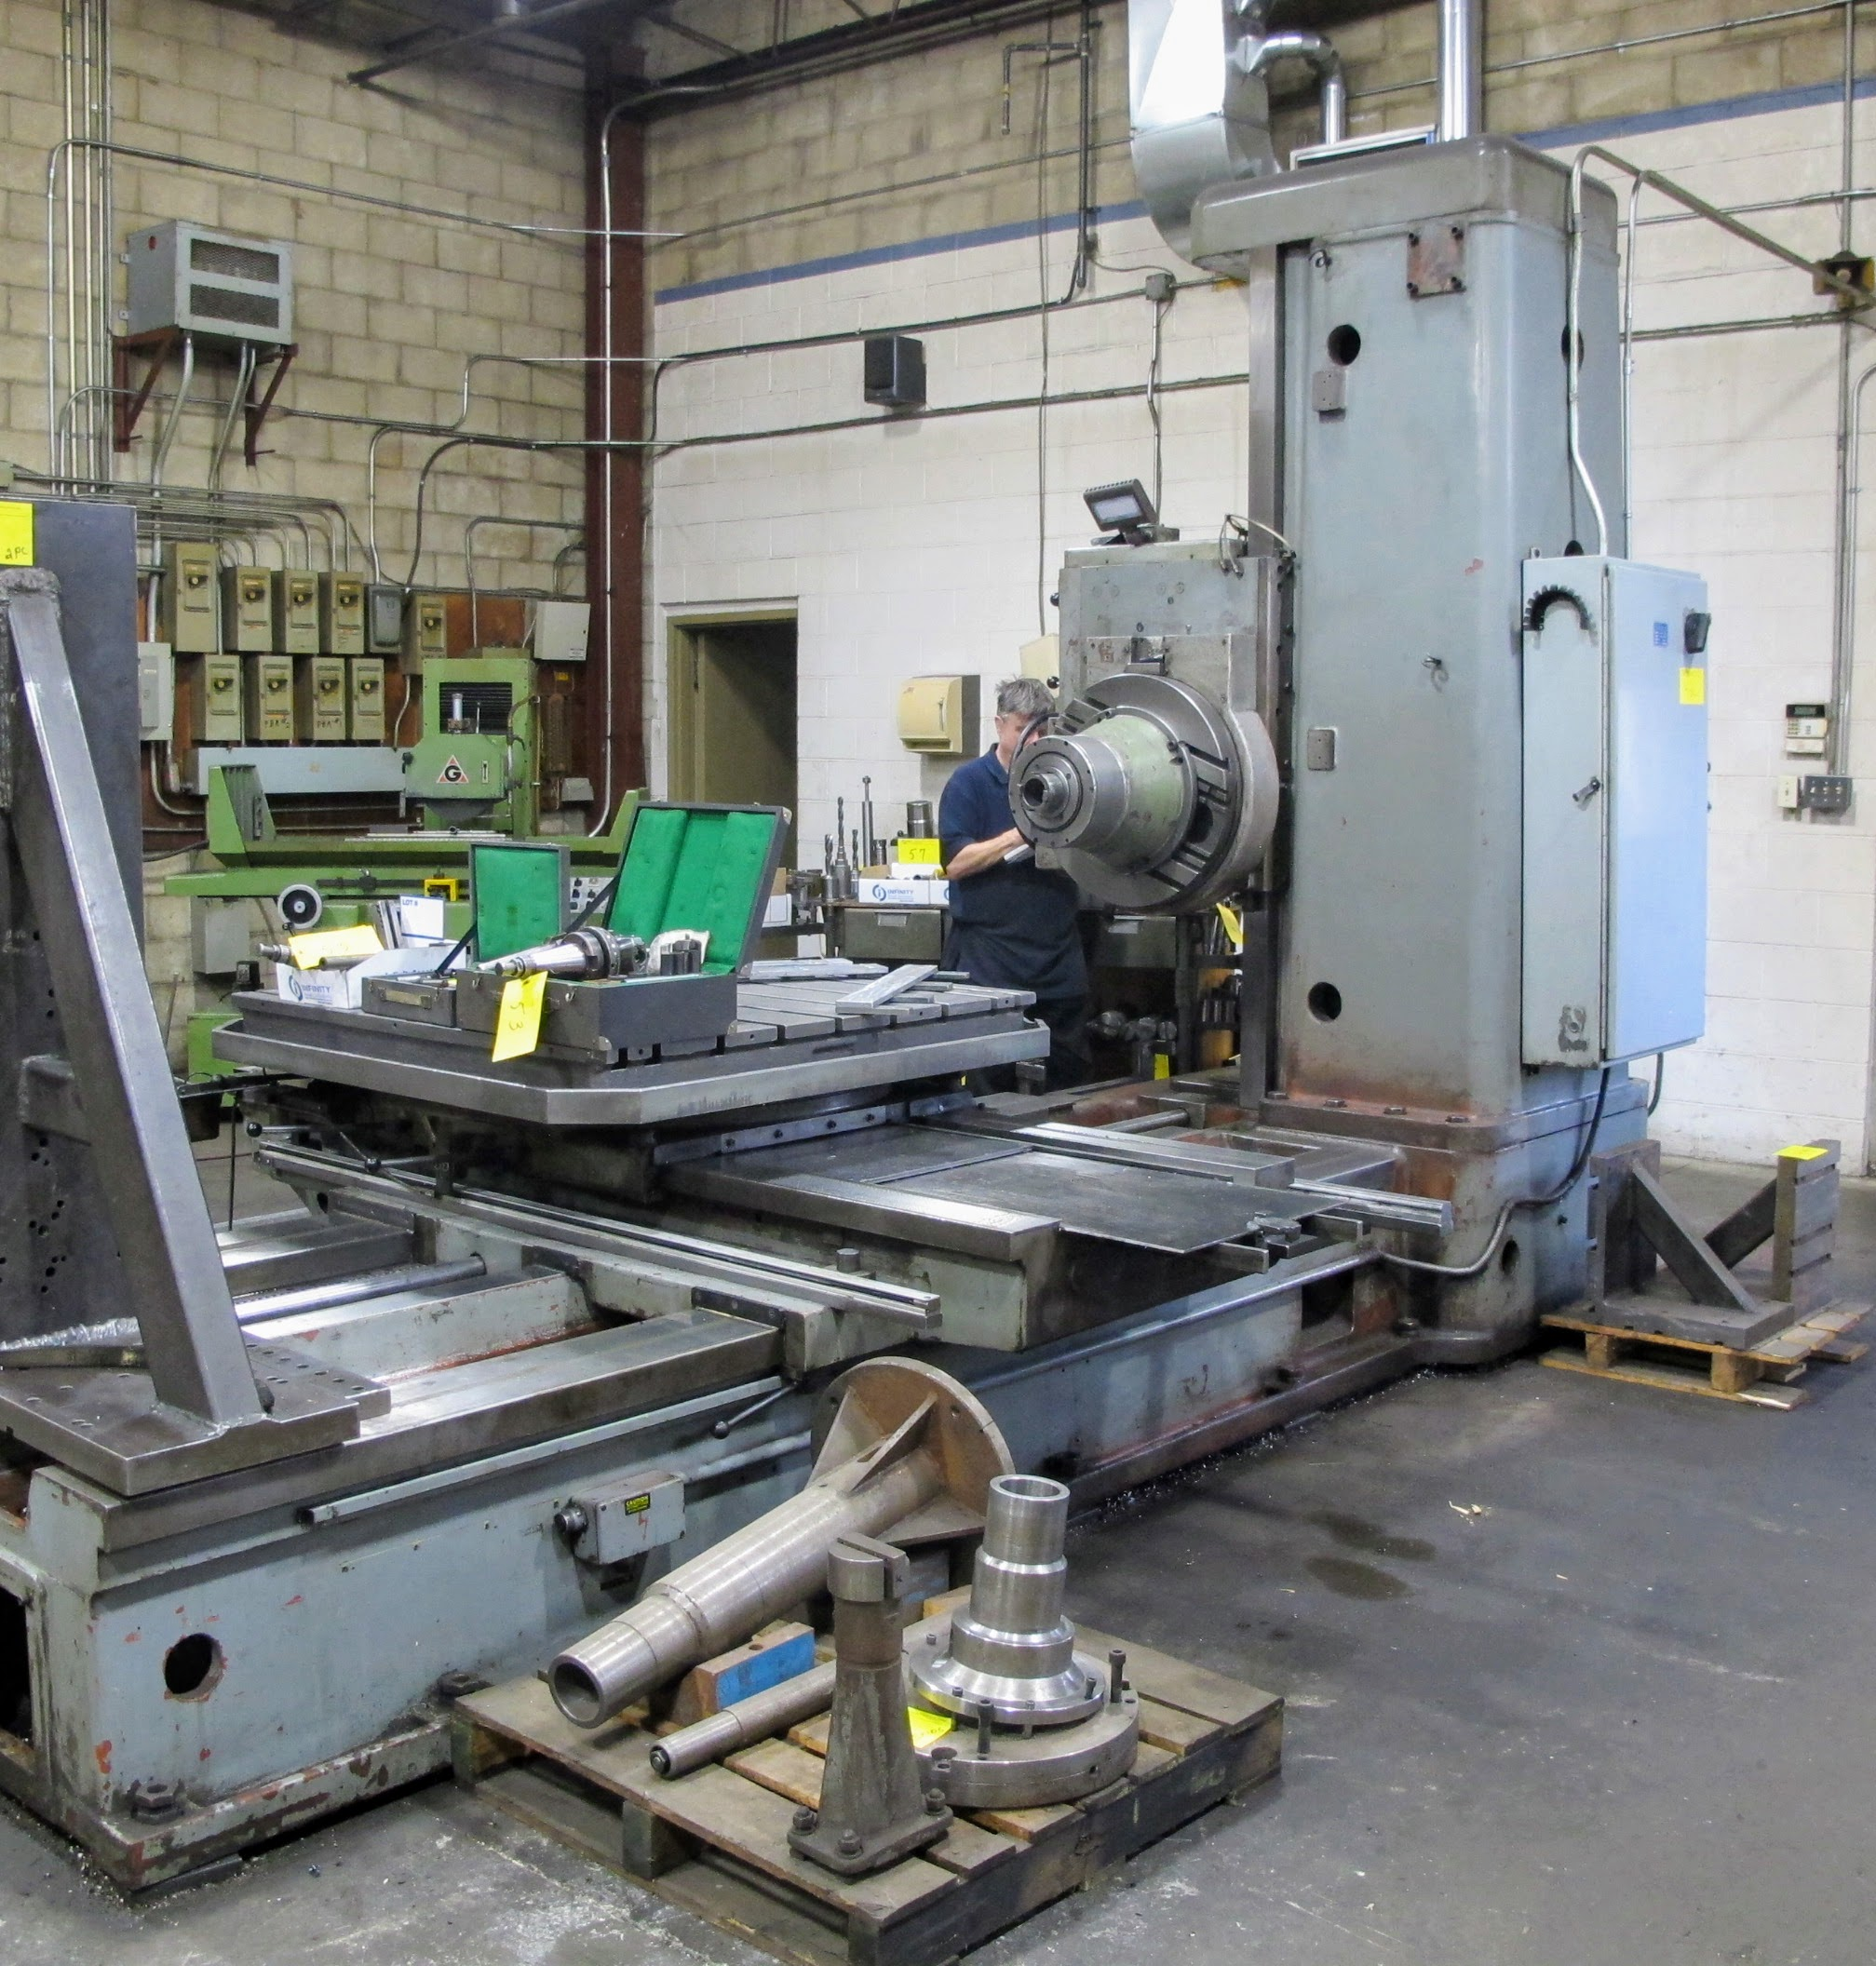 "TOS W100 HORIZONTAL BORING MILL, ACU-RITE 4-AXIS DRO, 4"" SPINDLE, 14 TO 1,120 RPM, 49"" X 49"" POWERED - Image 8 of 12"